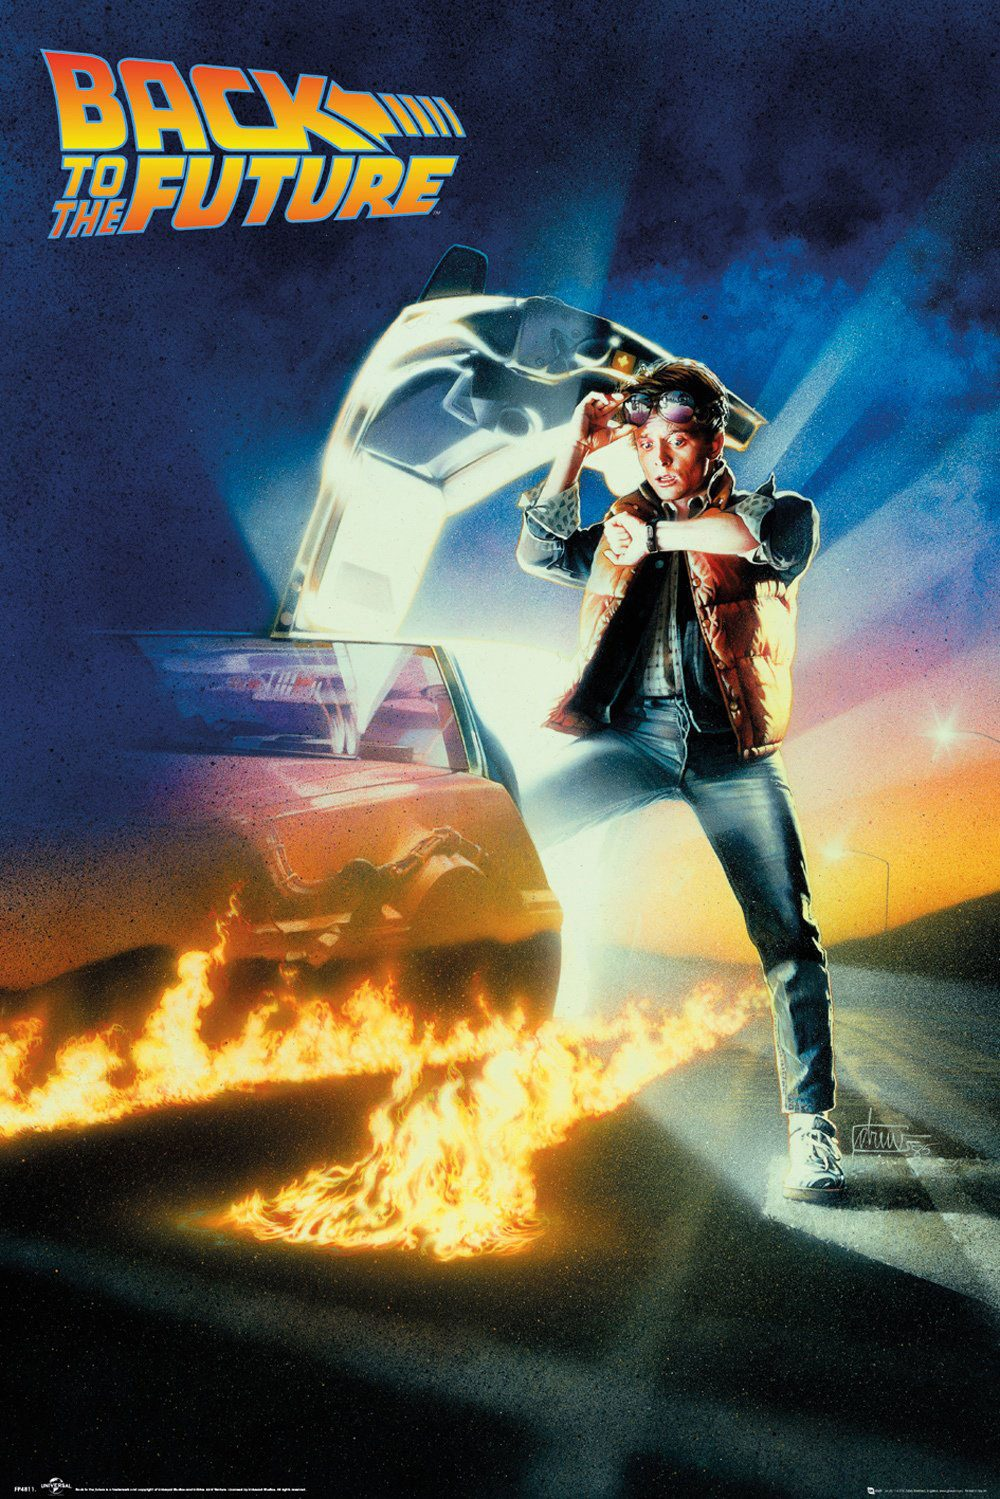 Back to the Future Poster Pack Key Art 61 x 91 cm (5)